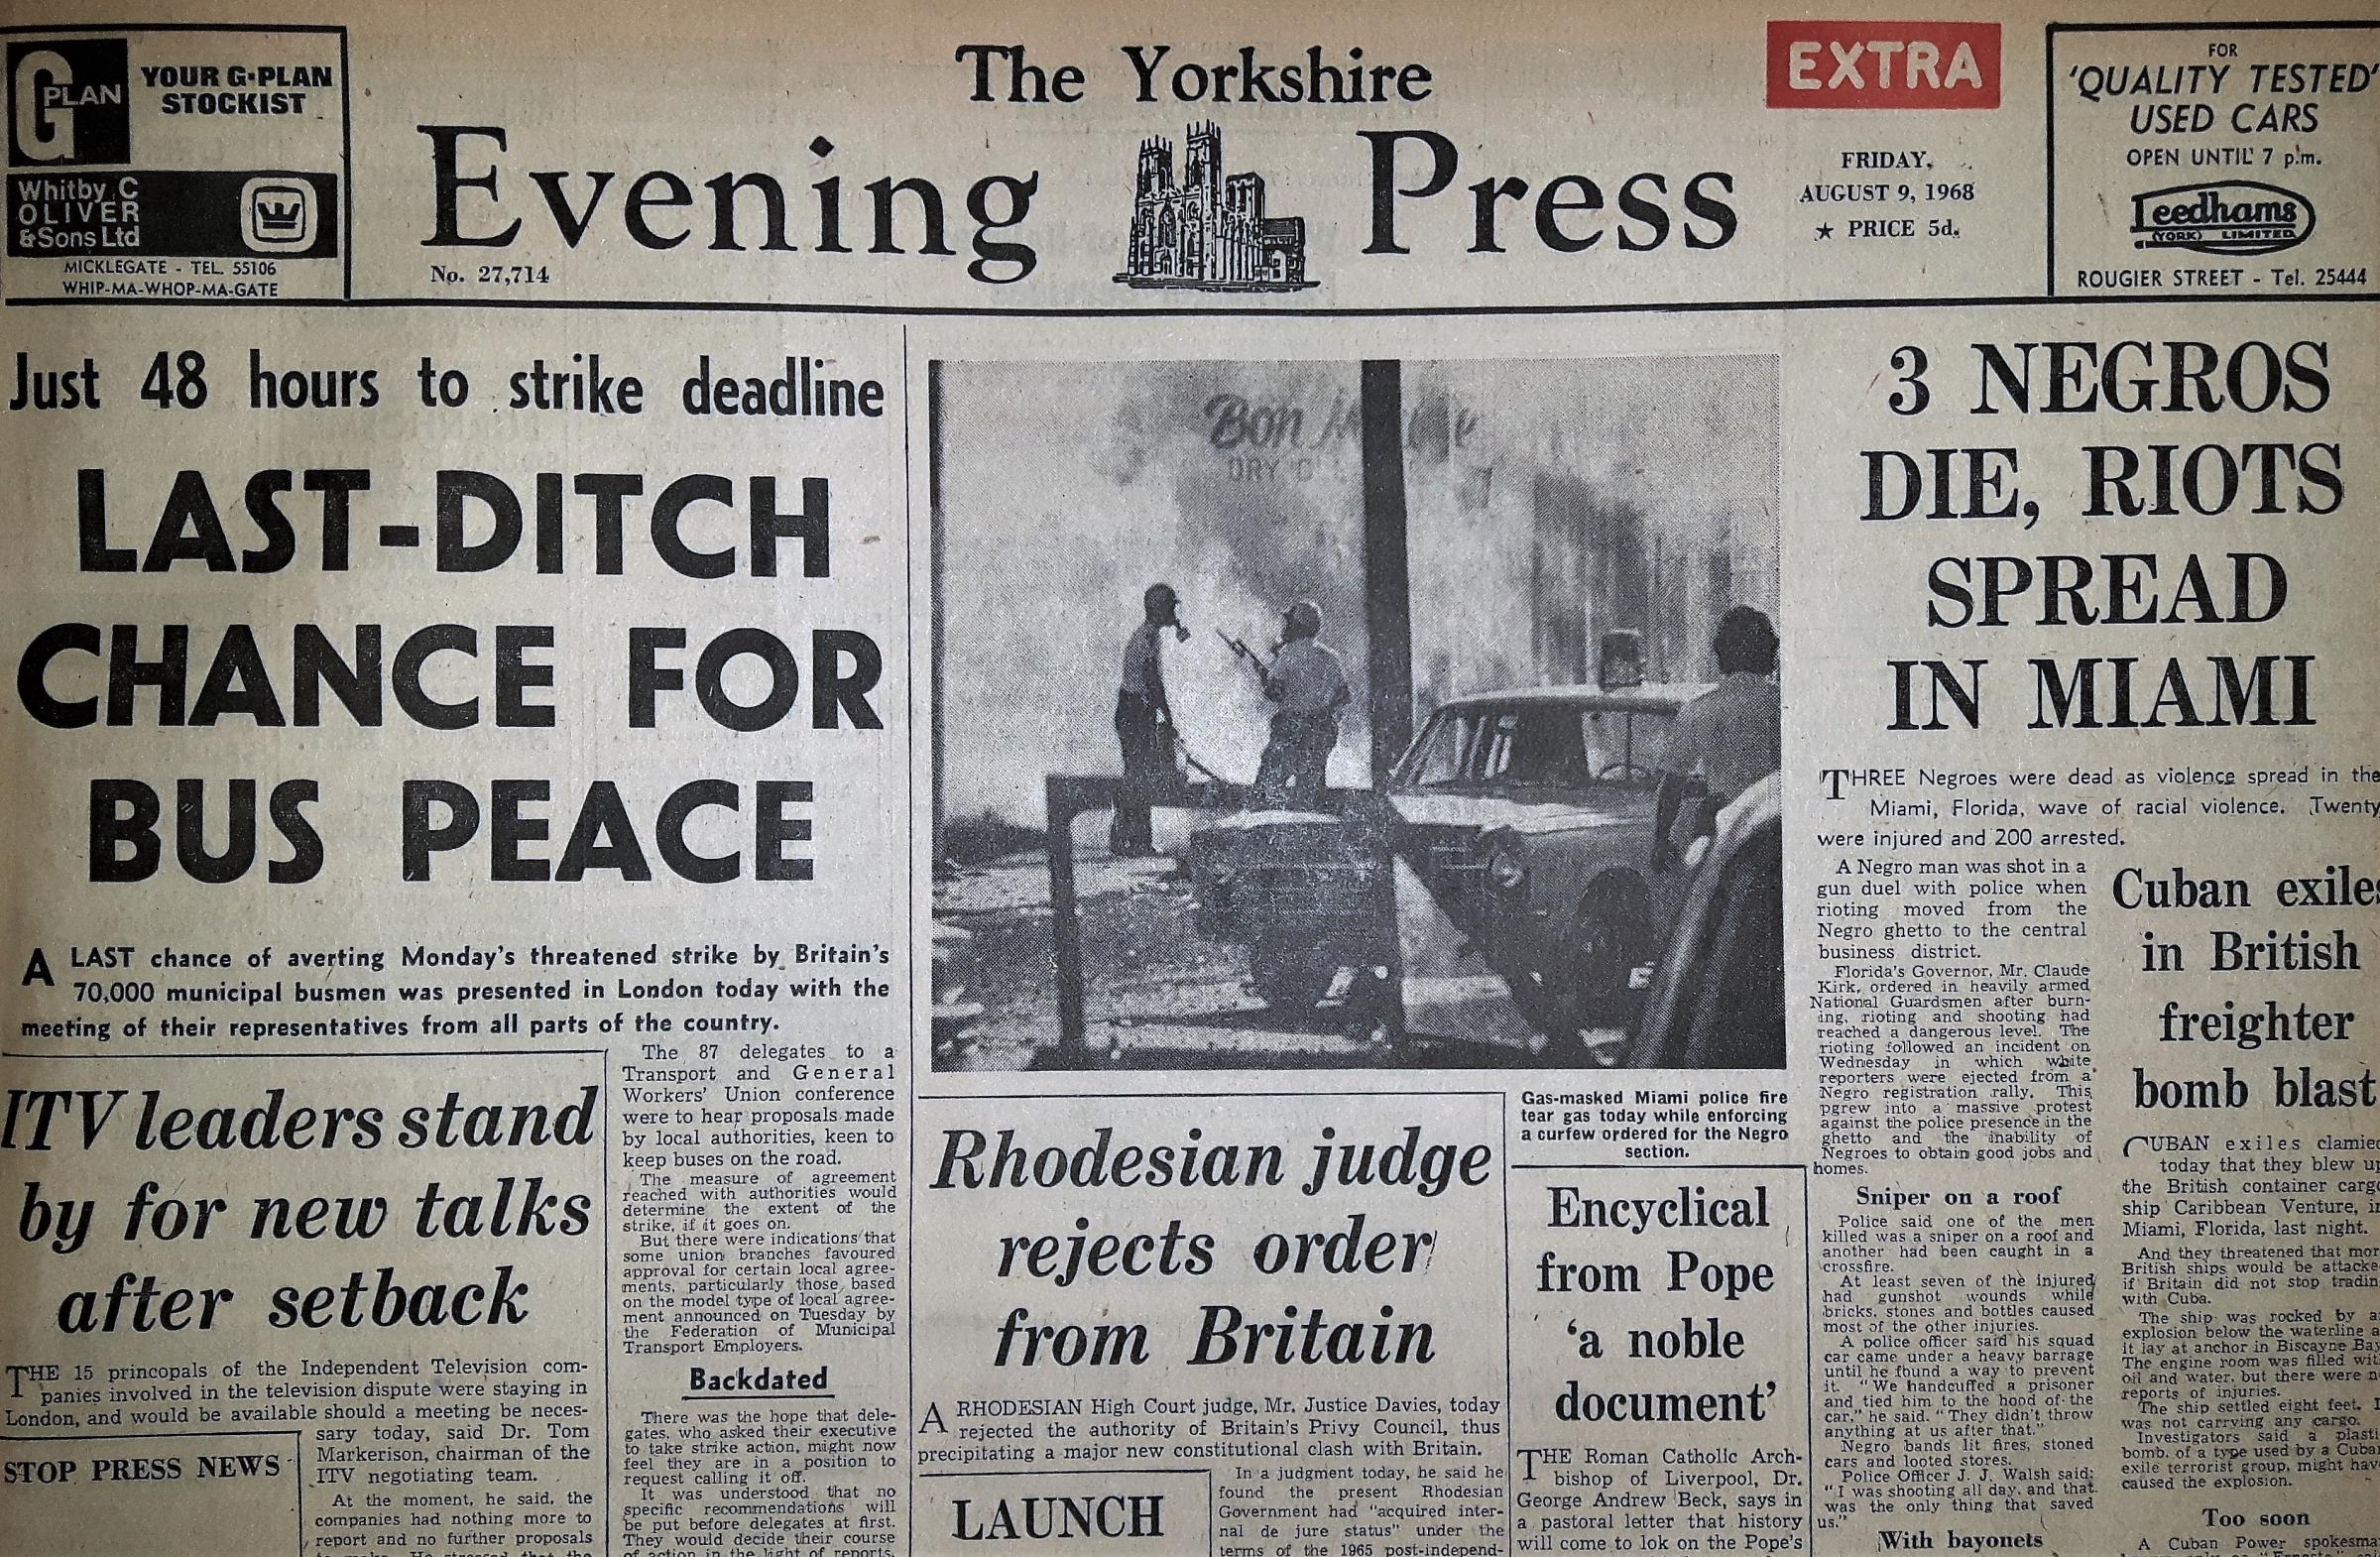 The Yorkshire Evening Press front page from August 9, 1968